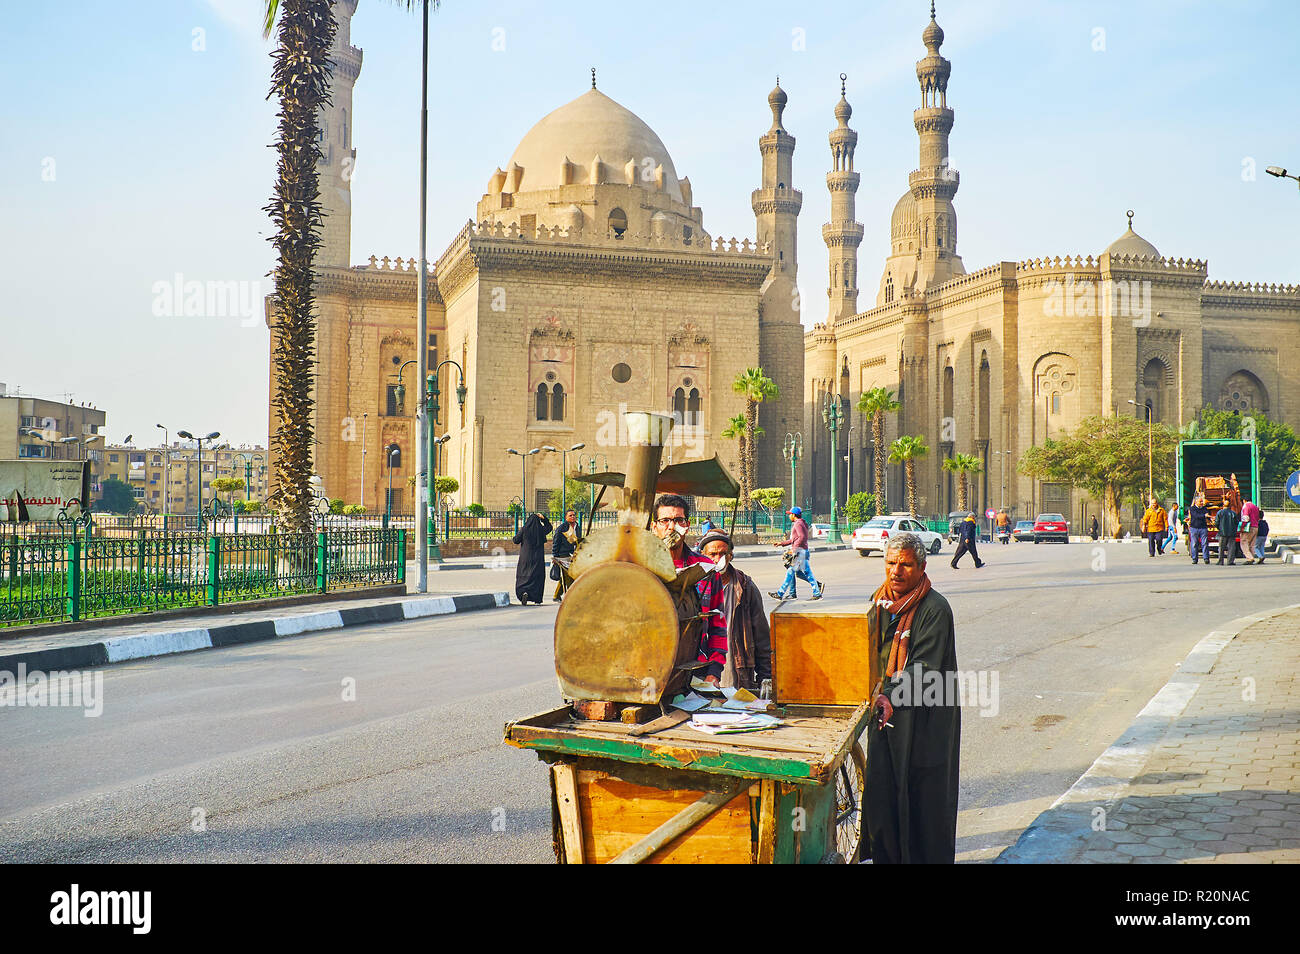 CAIRO, EGYPT - DECEMBER 21, 2017: Merchants push the food cart with oven on top, walking along Saladin Square, with a view on Sultan Hassan and the Ro - Stock Image